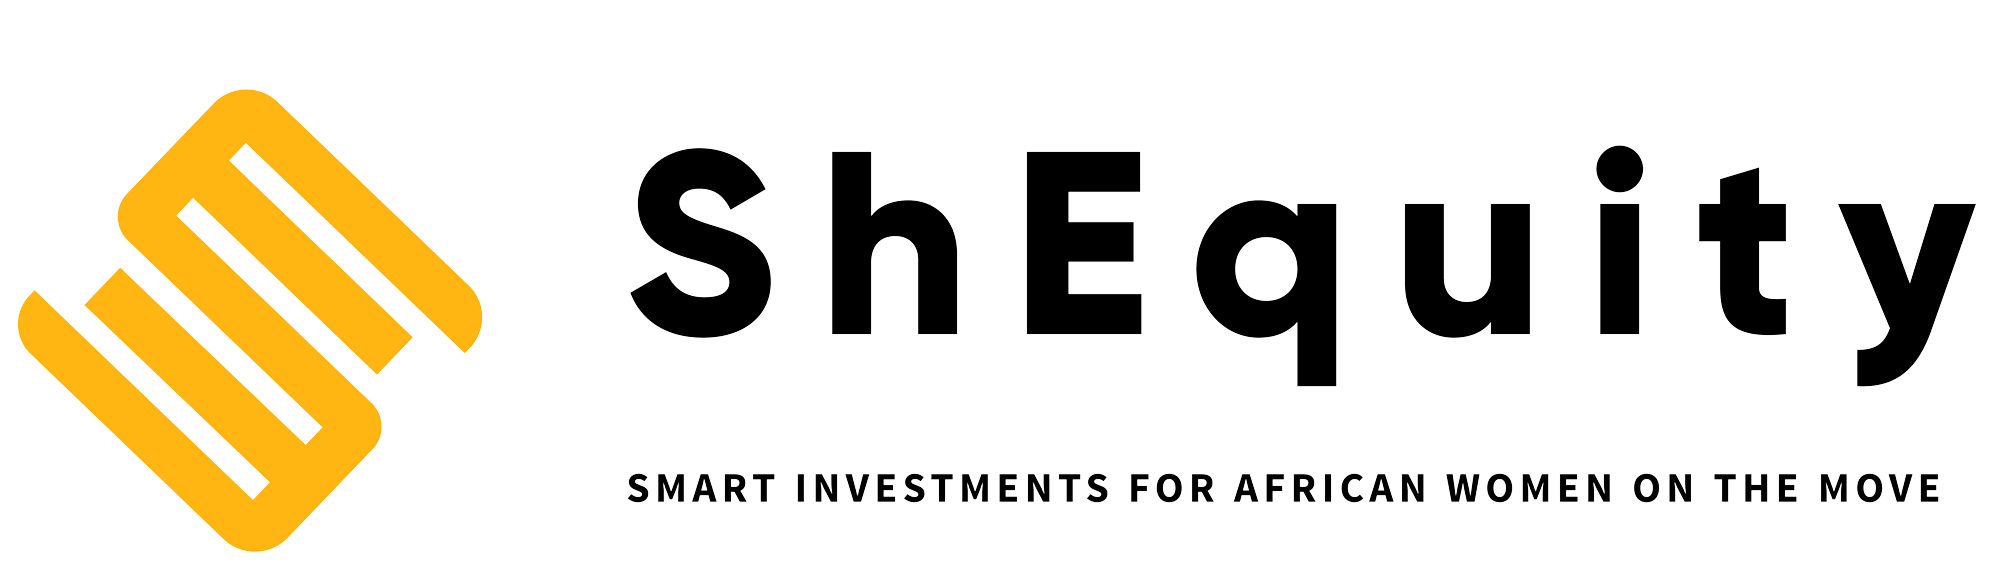 sh investments